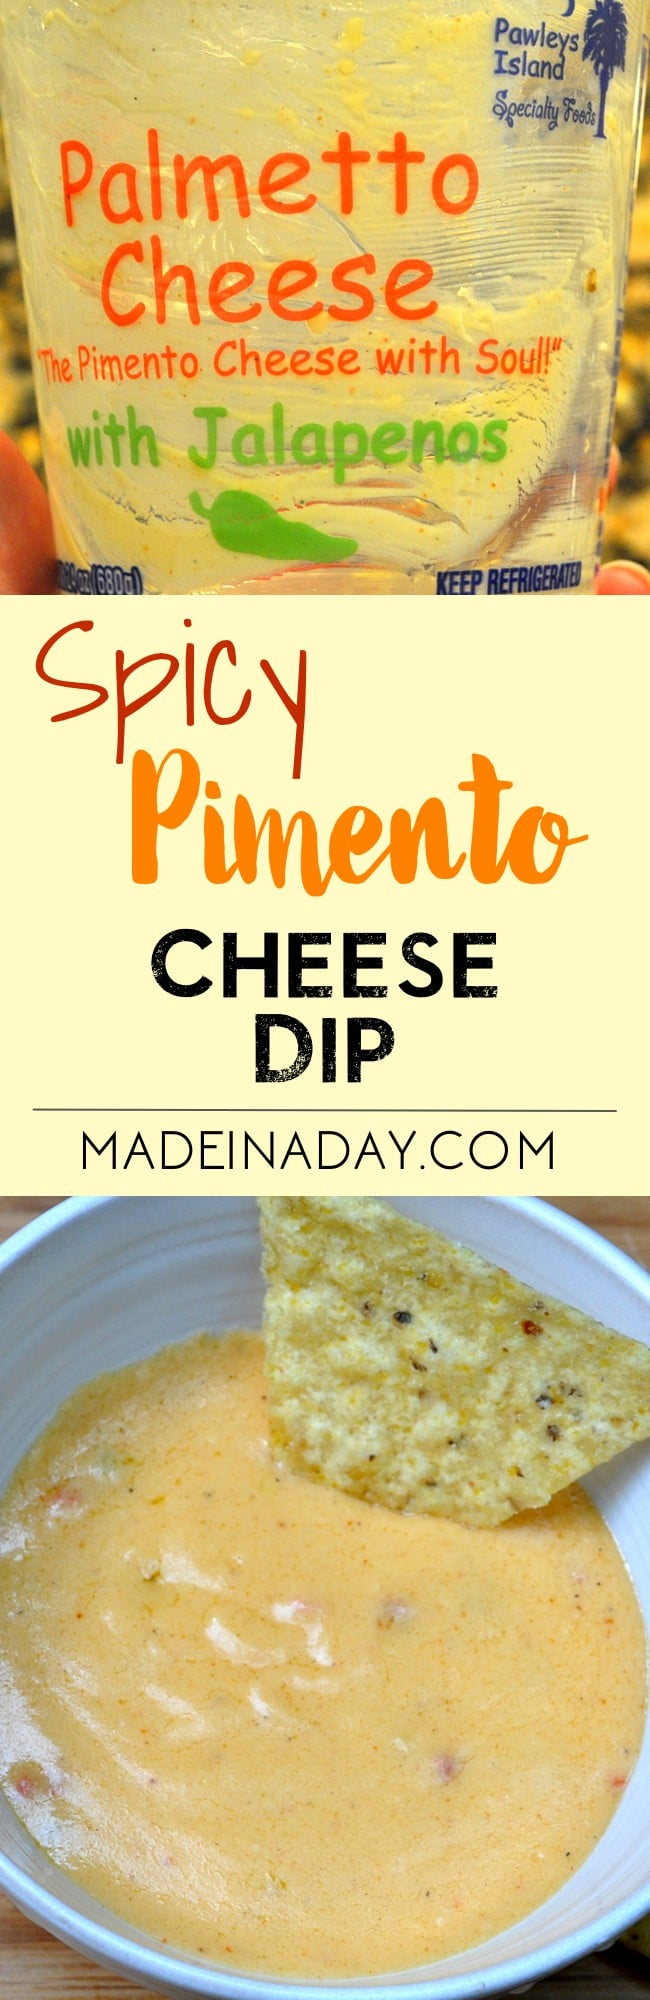 Super Easy Man Cave Tested #Spicy #Pimento #Cheese Dip, come get my husbands' favorite dip recipe! Football favorite dip! pimento cheese appetizer,